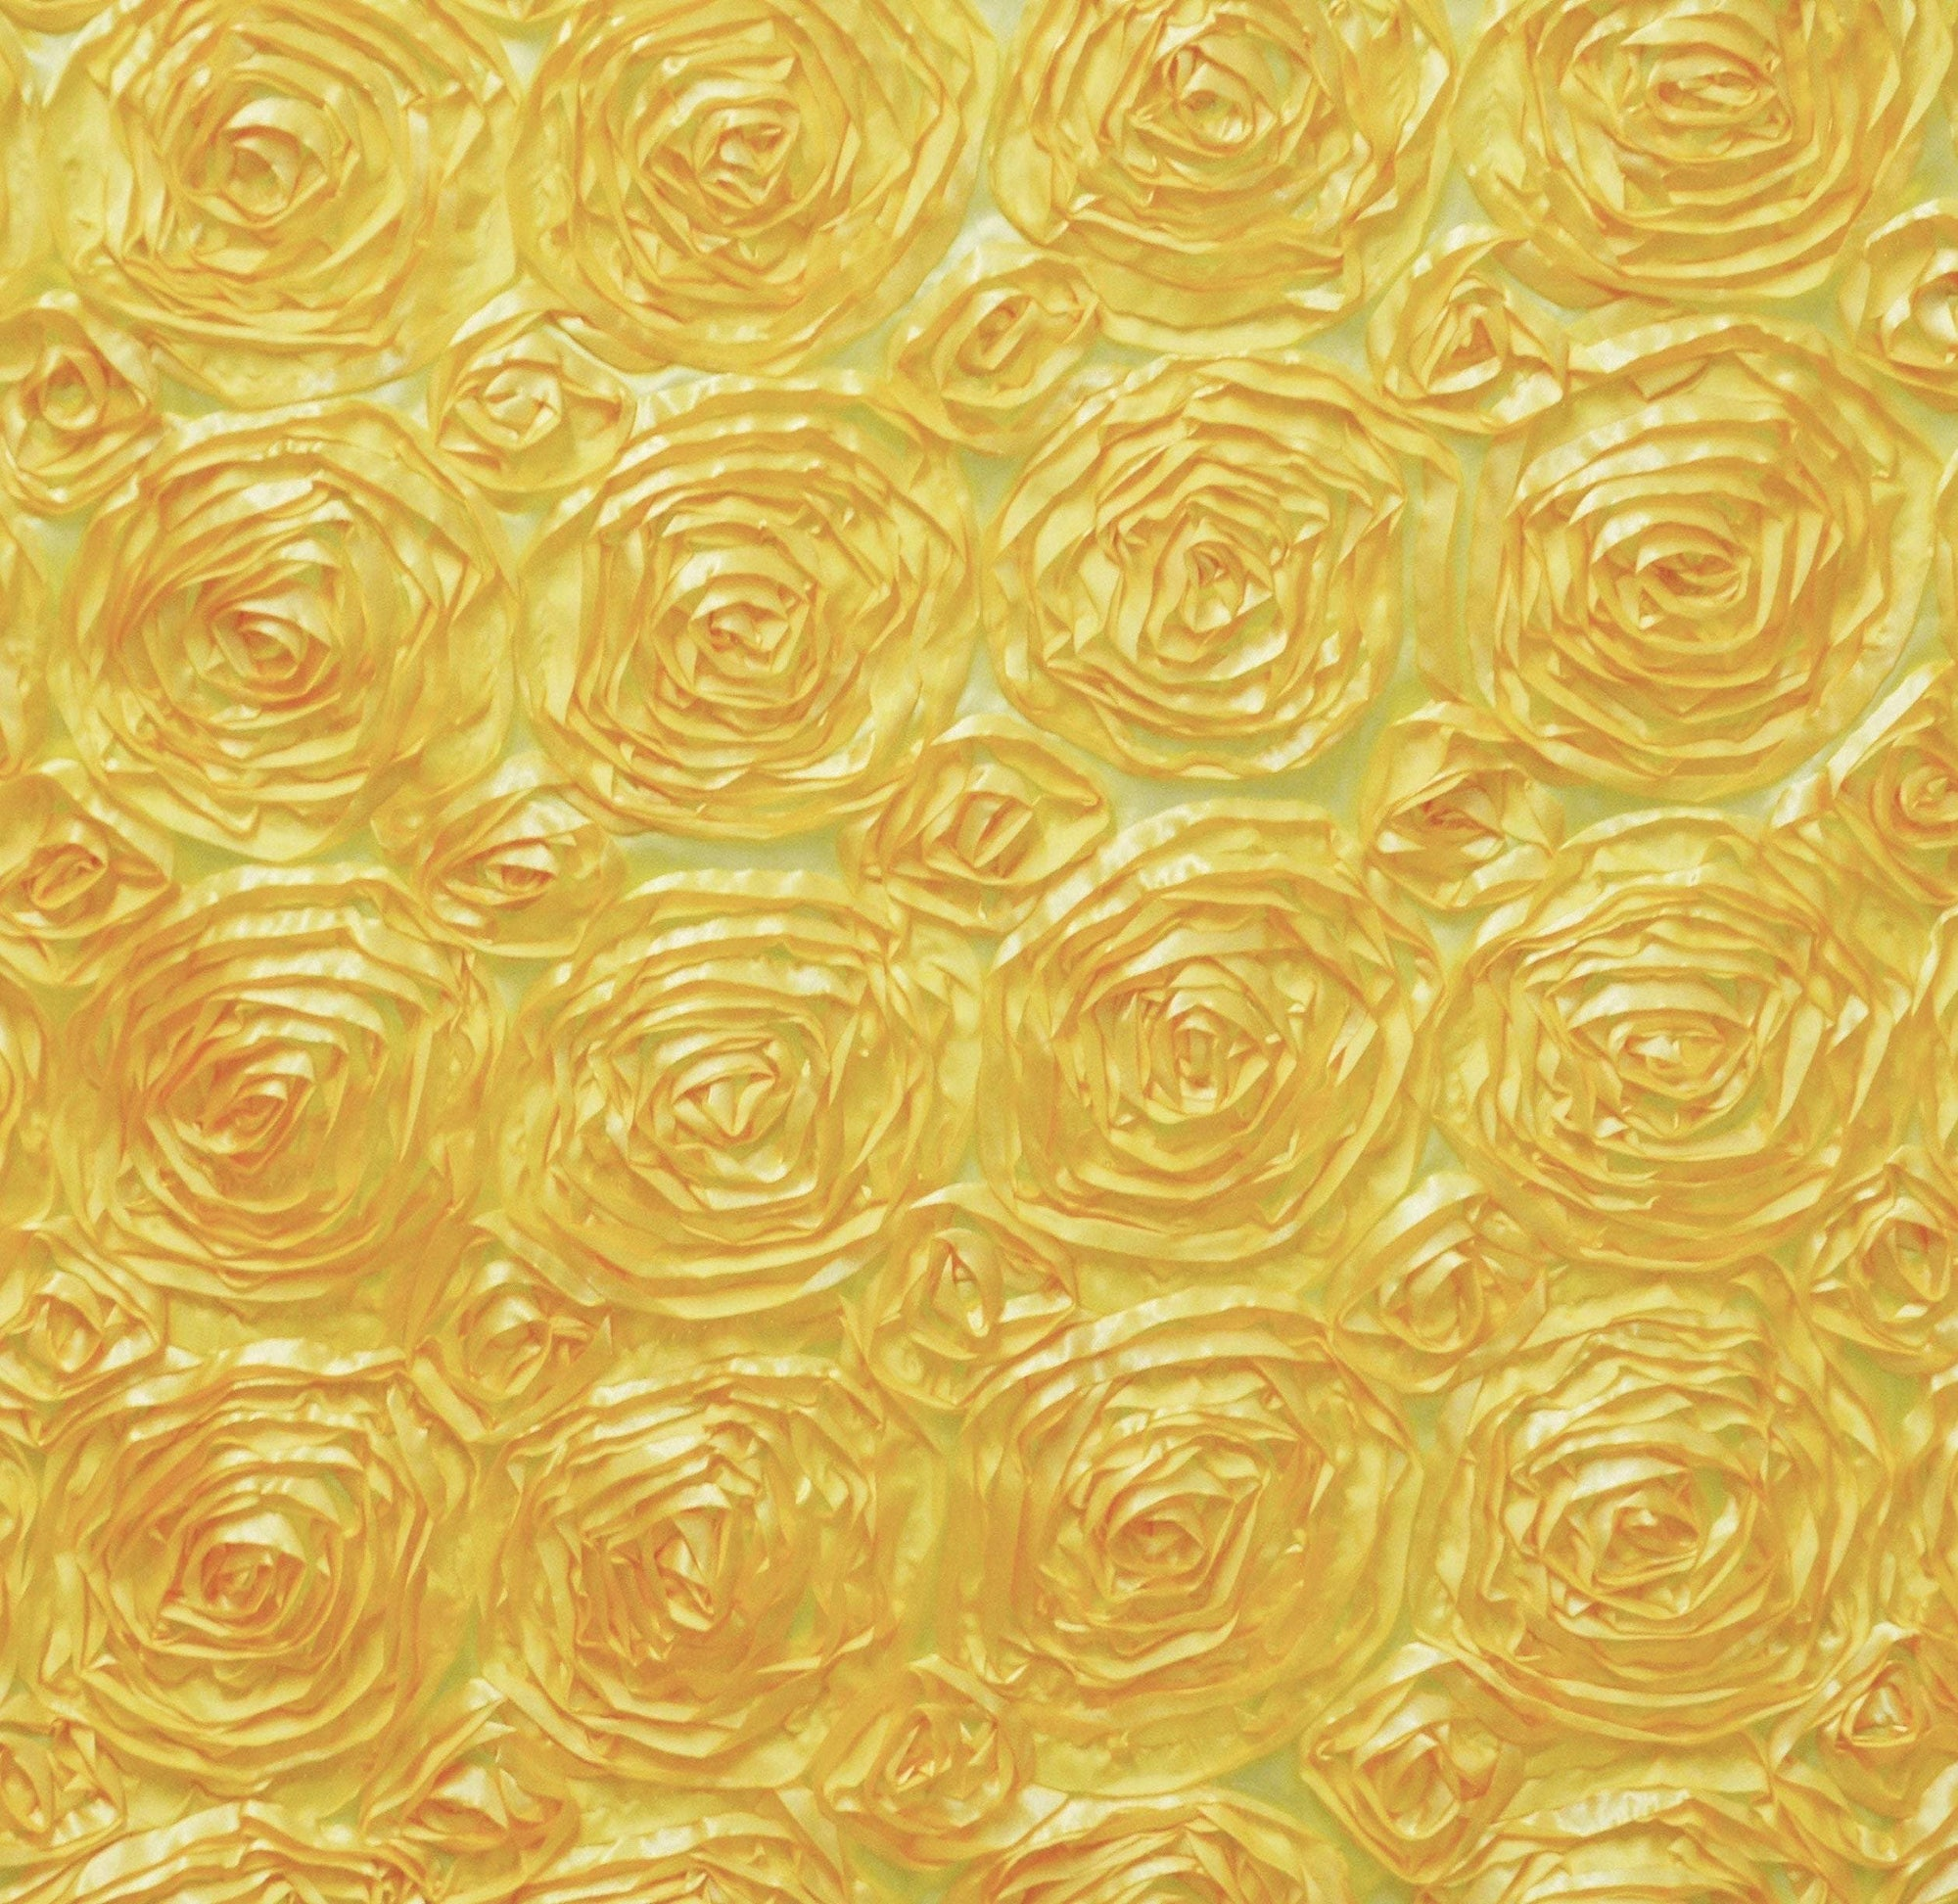 Paige YELLOW 3D Floral Polyester Satin Rosette Fabric by the Yard - 10028